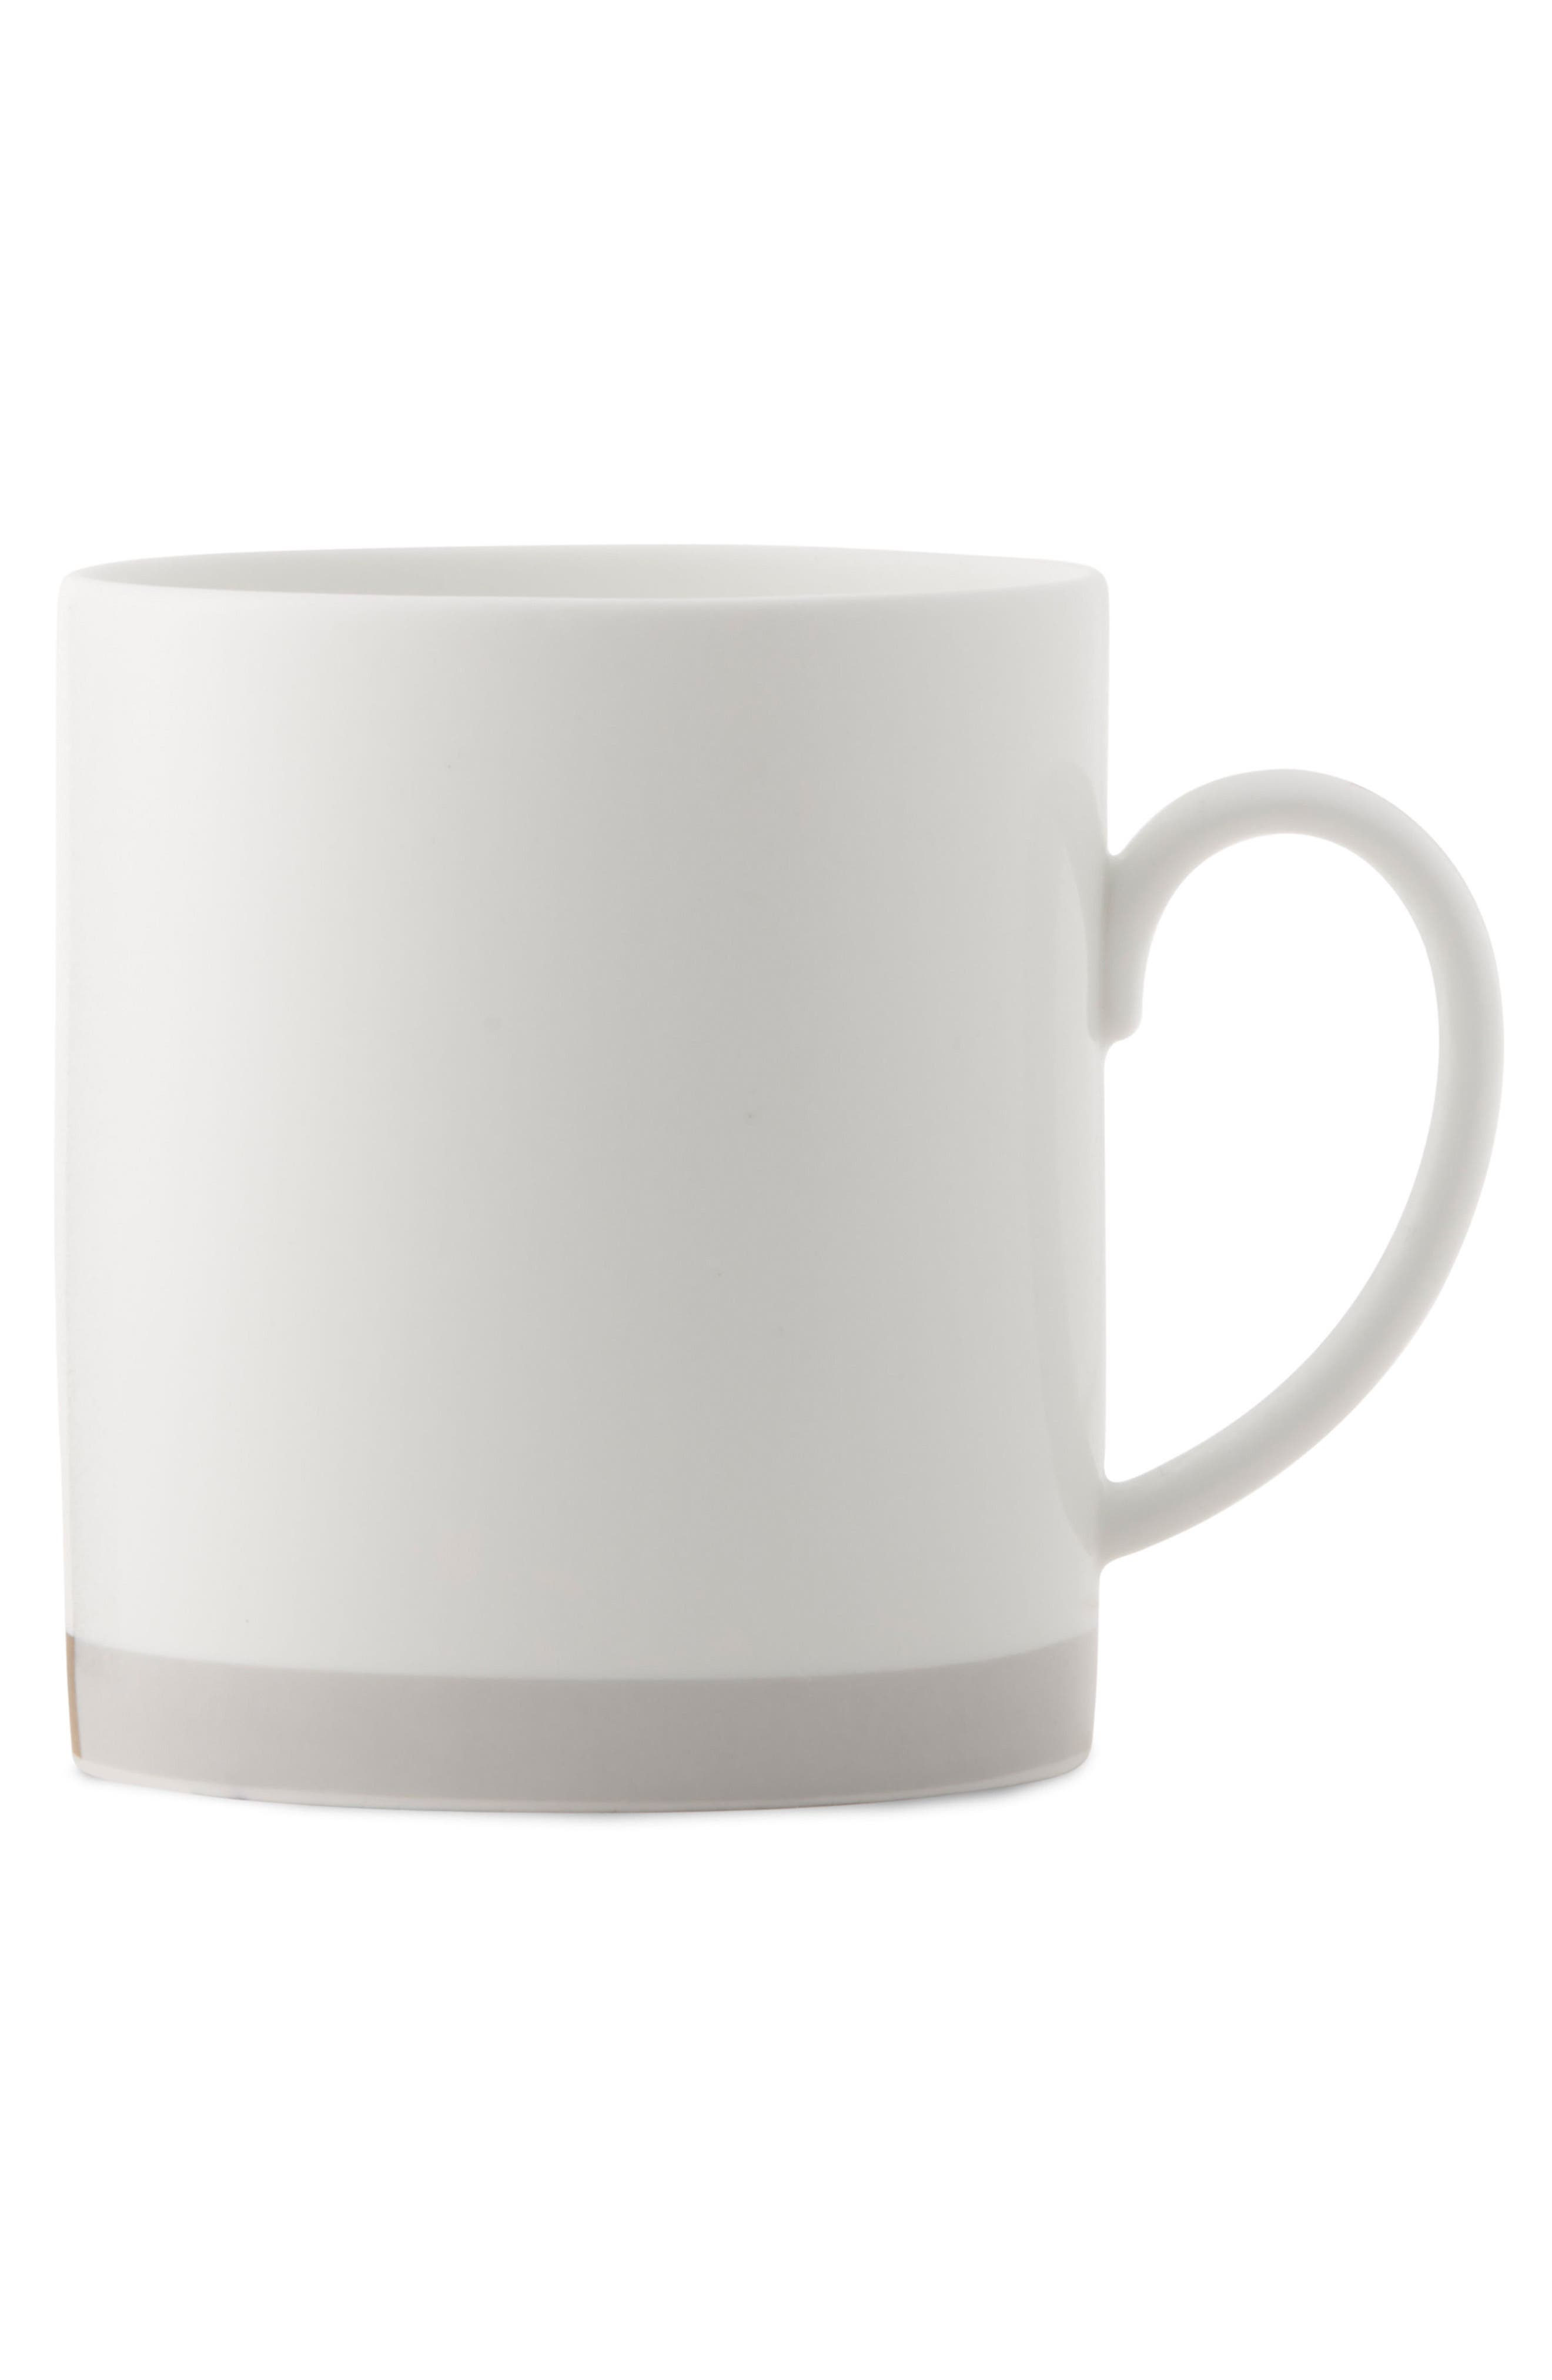 x Wedgewood Castillon Mug,                             Main thumbnail 1, color,                             100